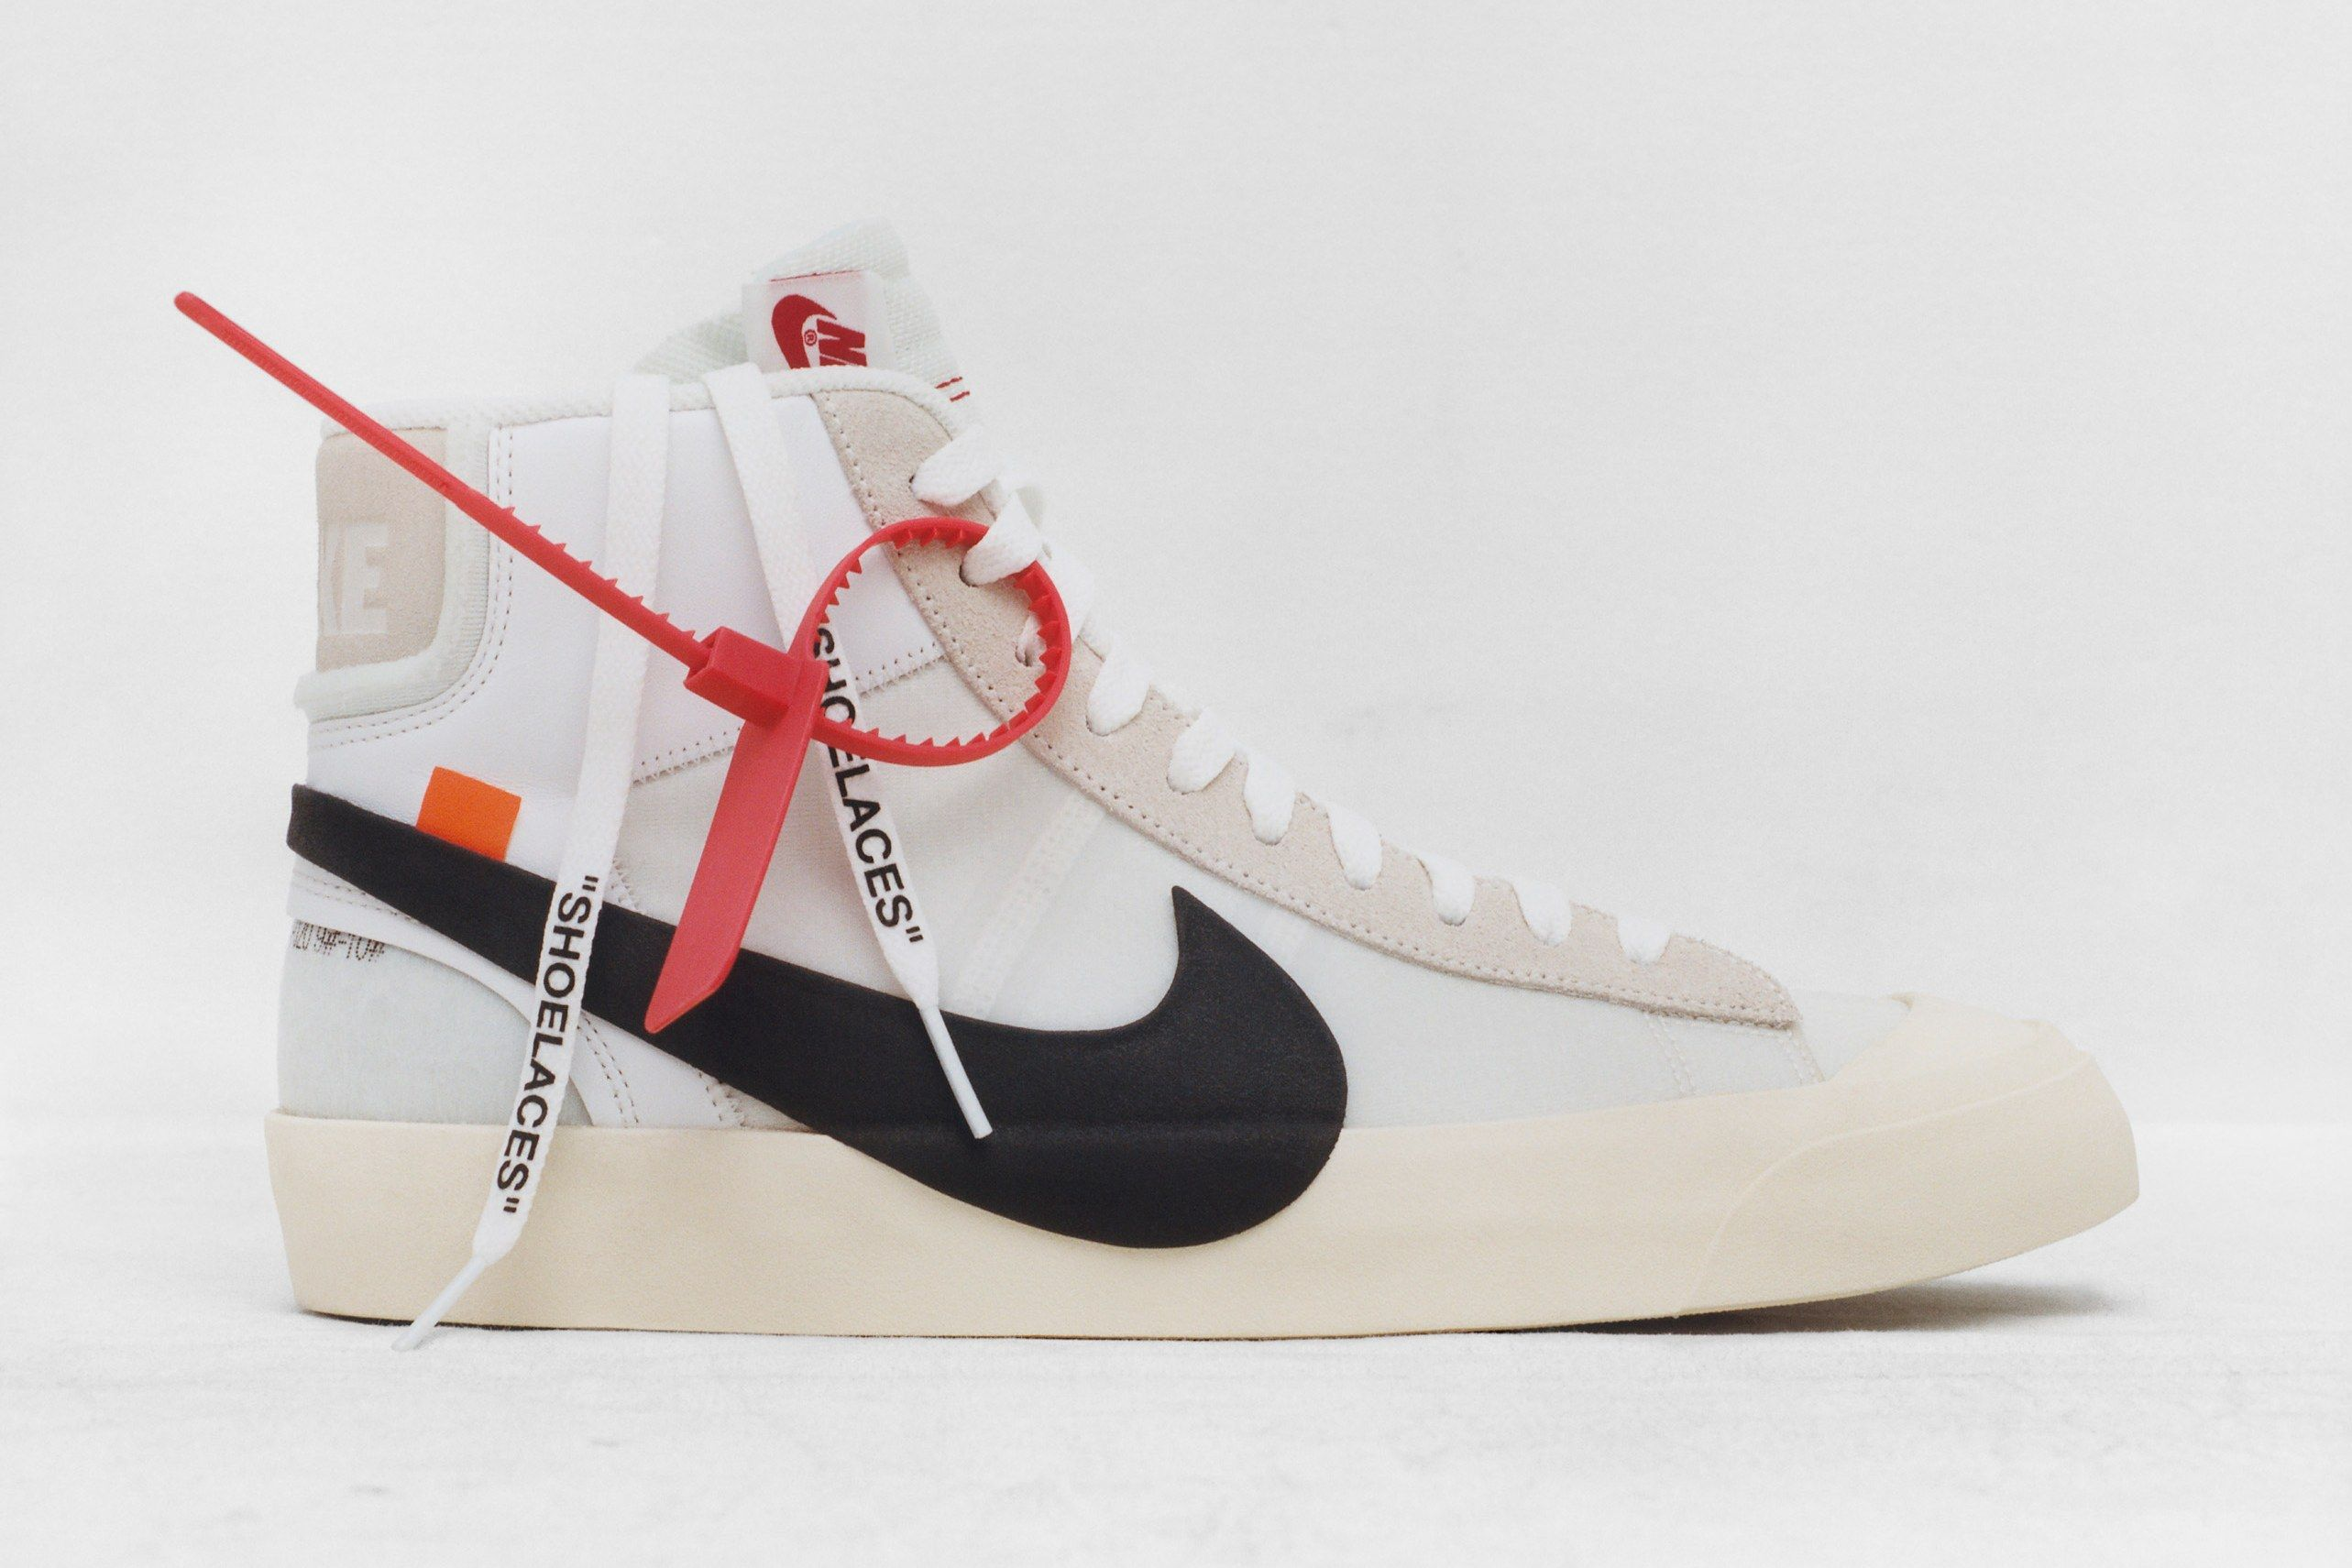 Exclusive: See the Complete Virgil Abloh x Nike